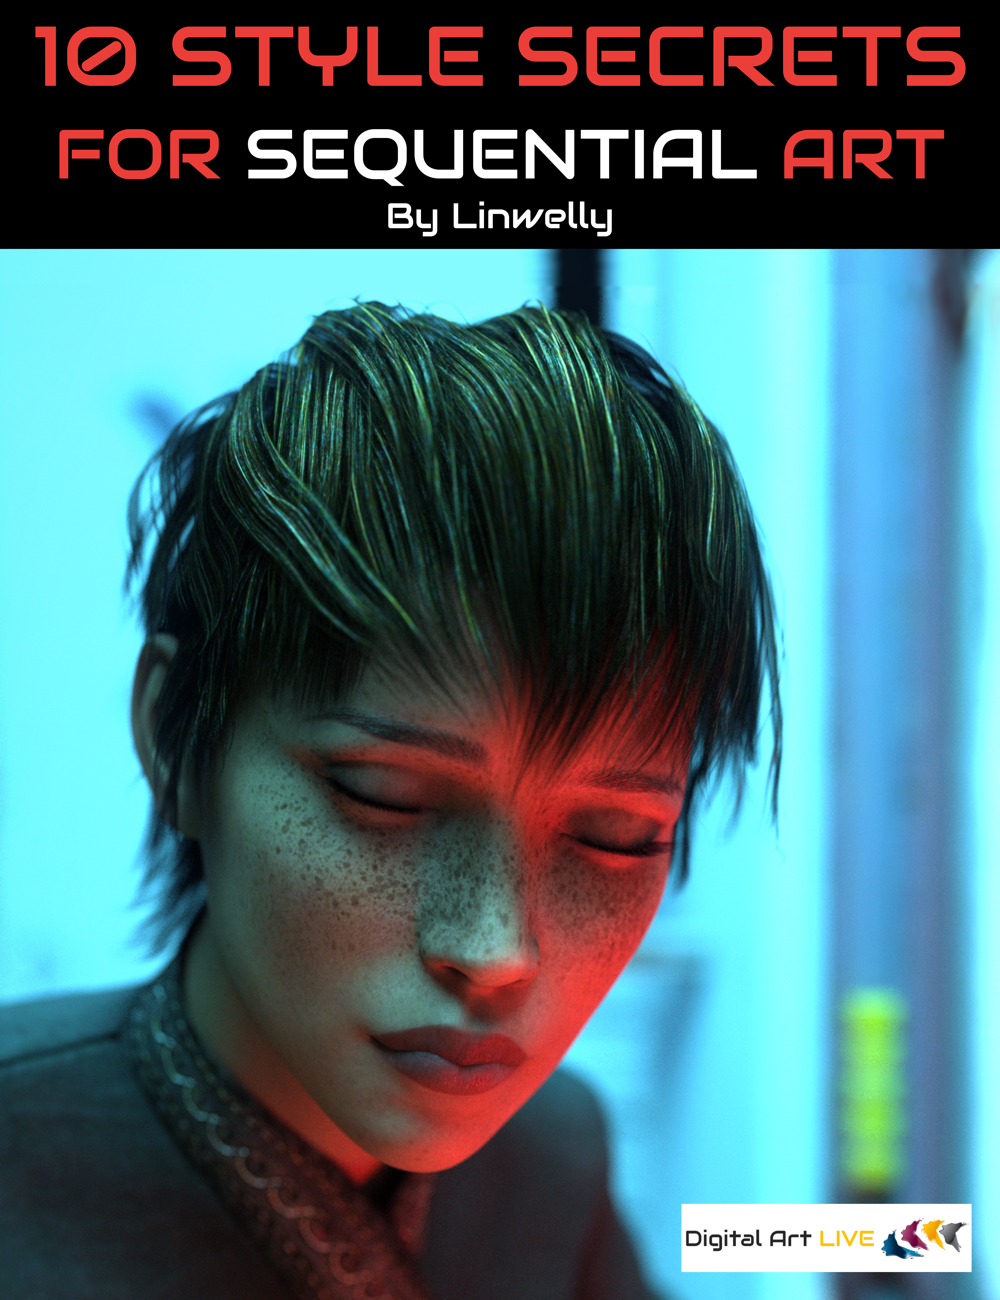 Ten Style Secrets for Sequential Art by: Digital Art Live, 3D Models by Daz 3D